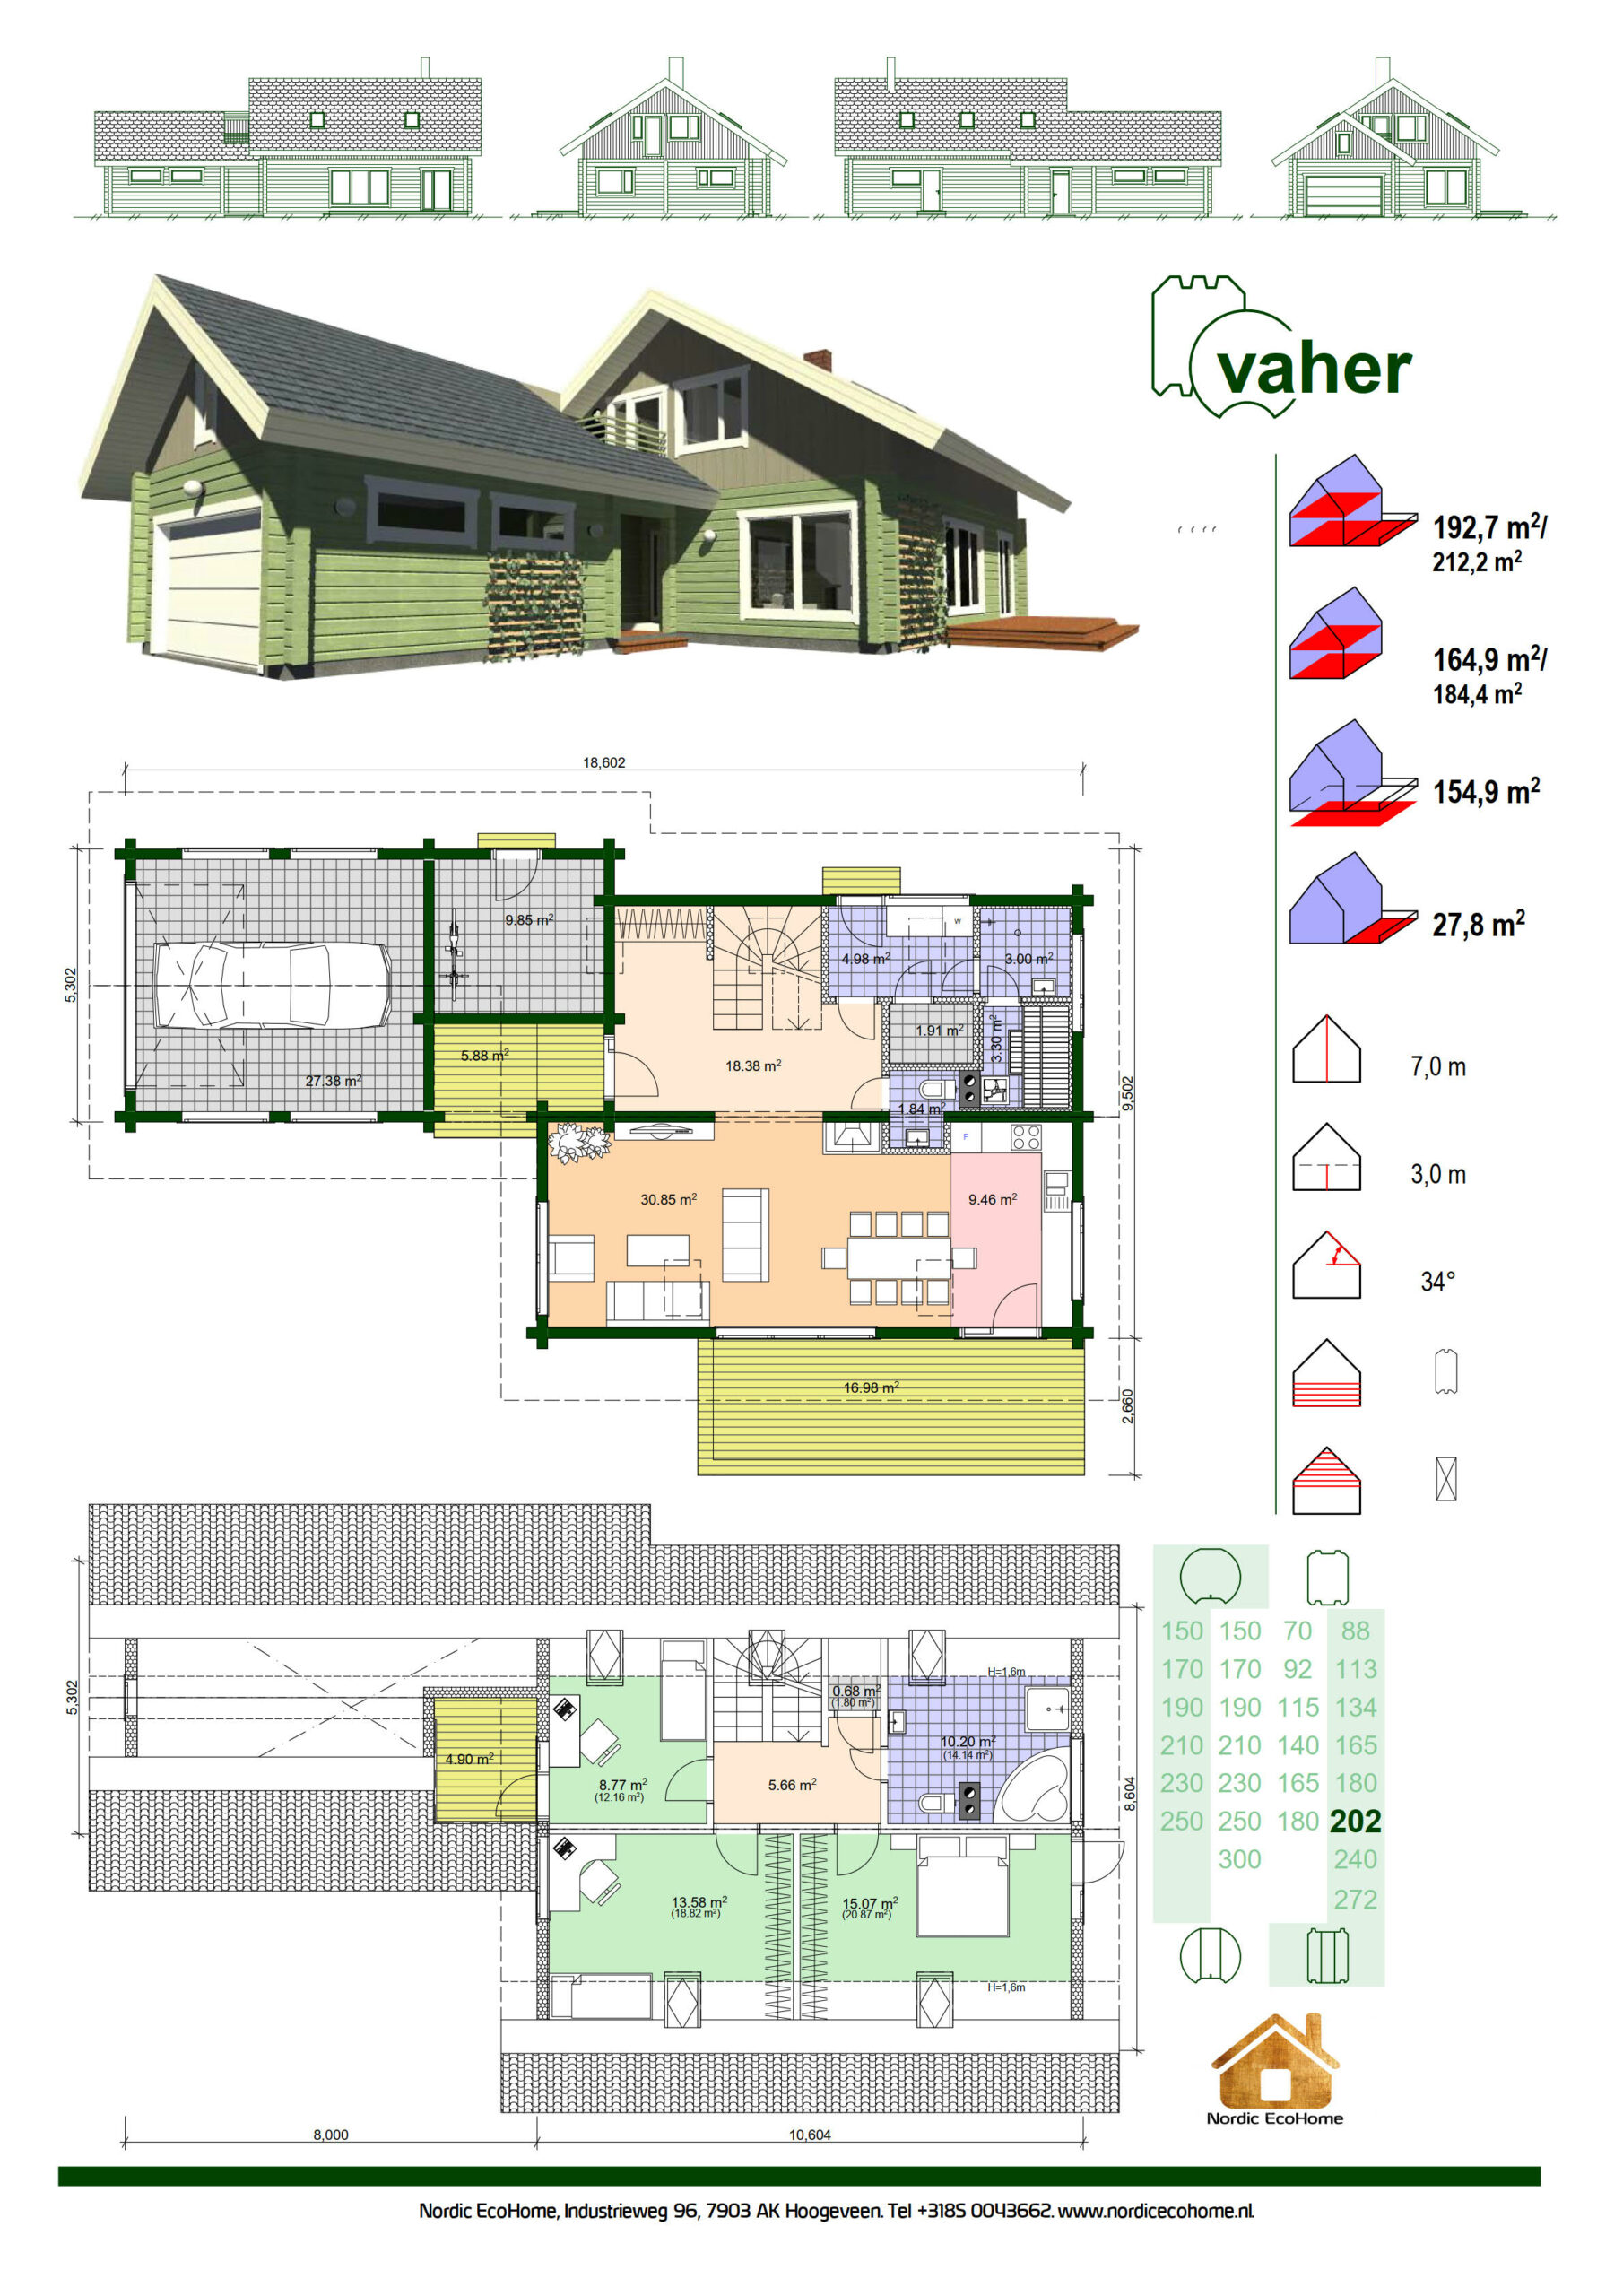 Nordic EcoHome VAHER